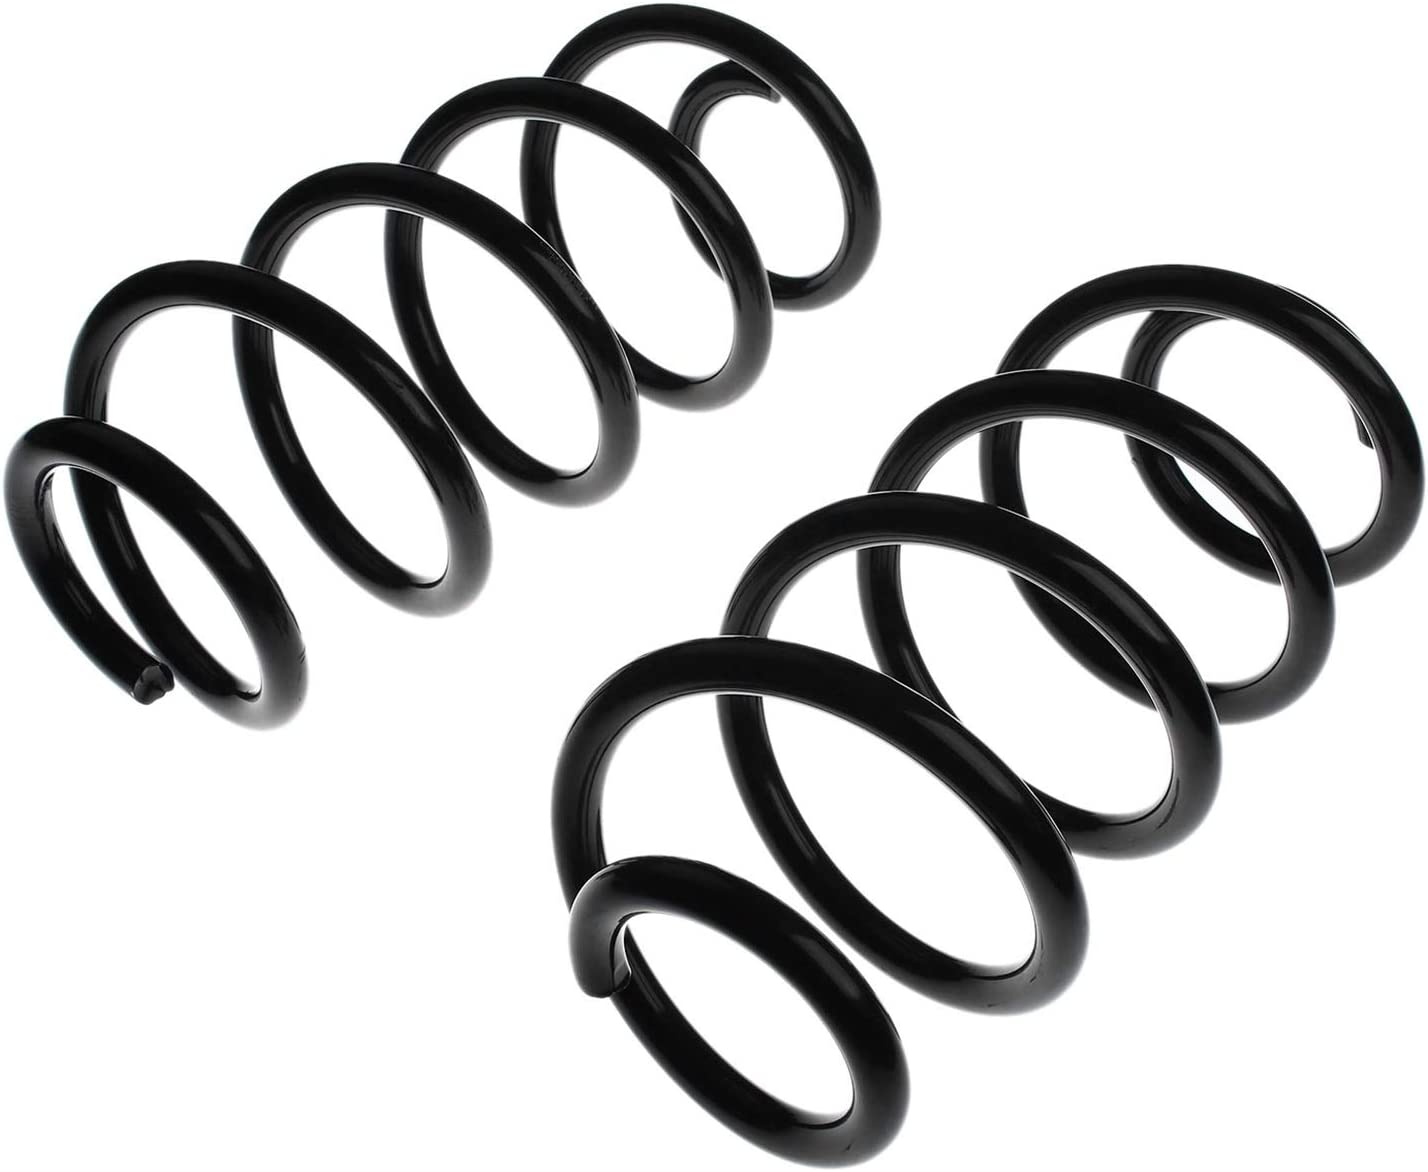 Set of ! Super beauty product restock quality top! 2 Front Coil Springs Audi Replacement B8 for A4 2008-2015 Luxury